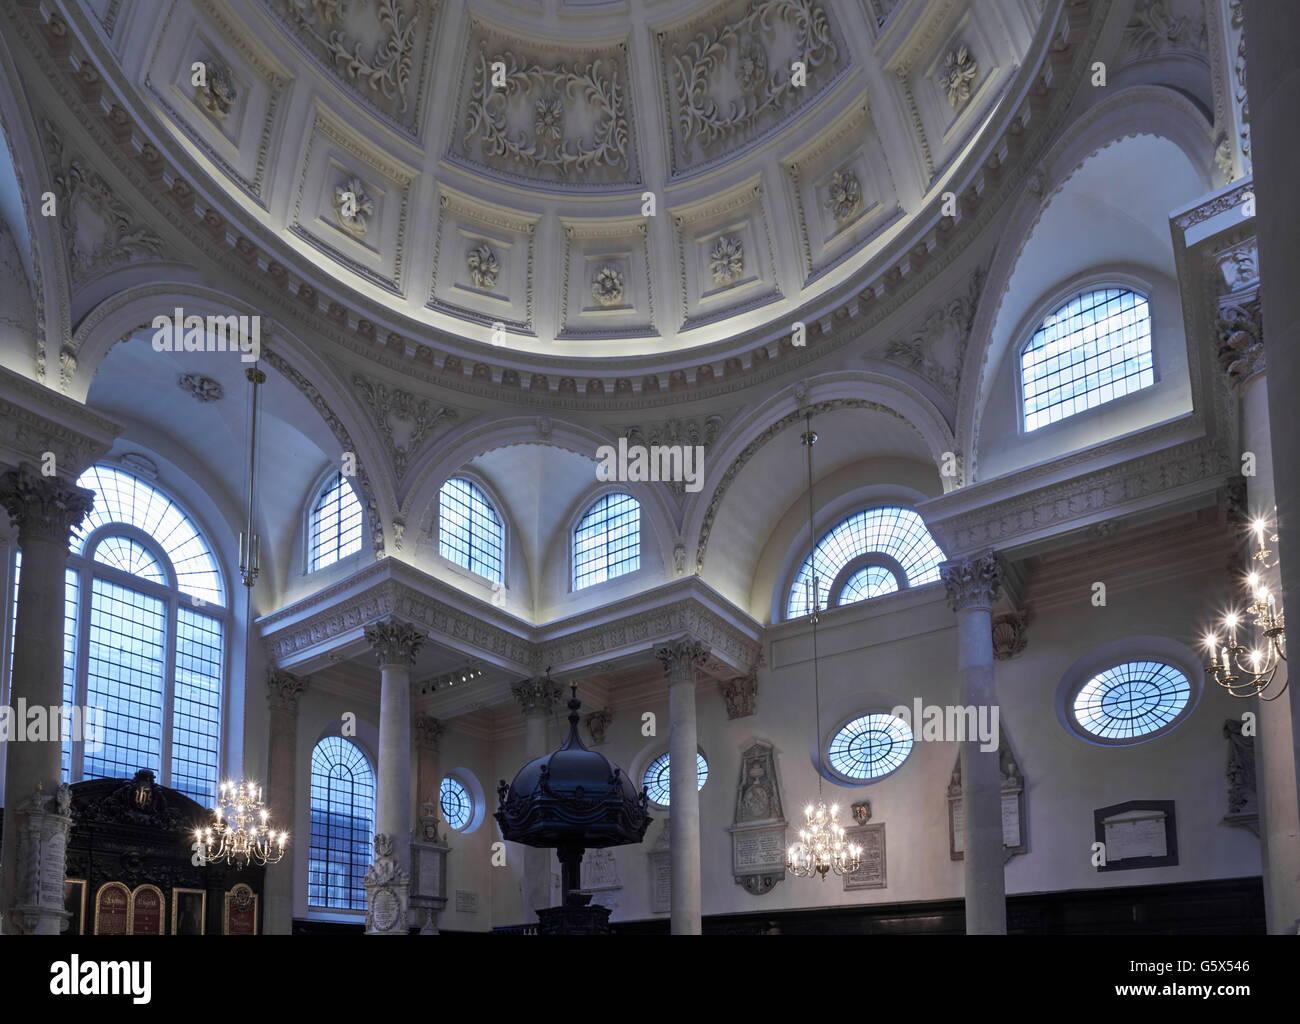 St Stephen Walbrook, church in the City of London; dome and entablature - Stock Image